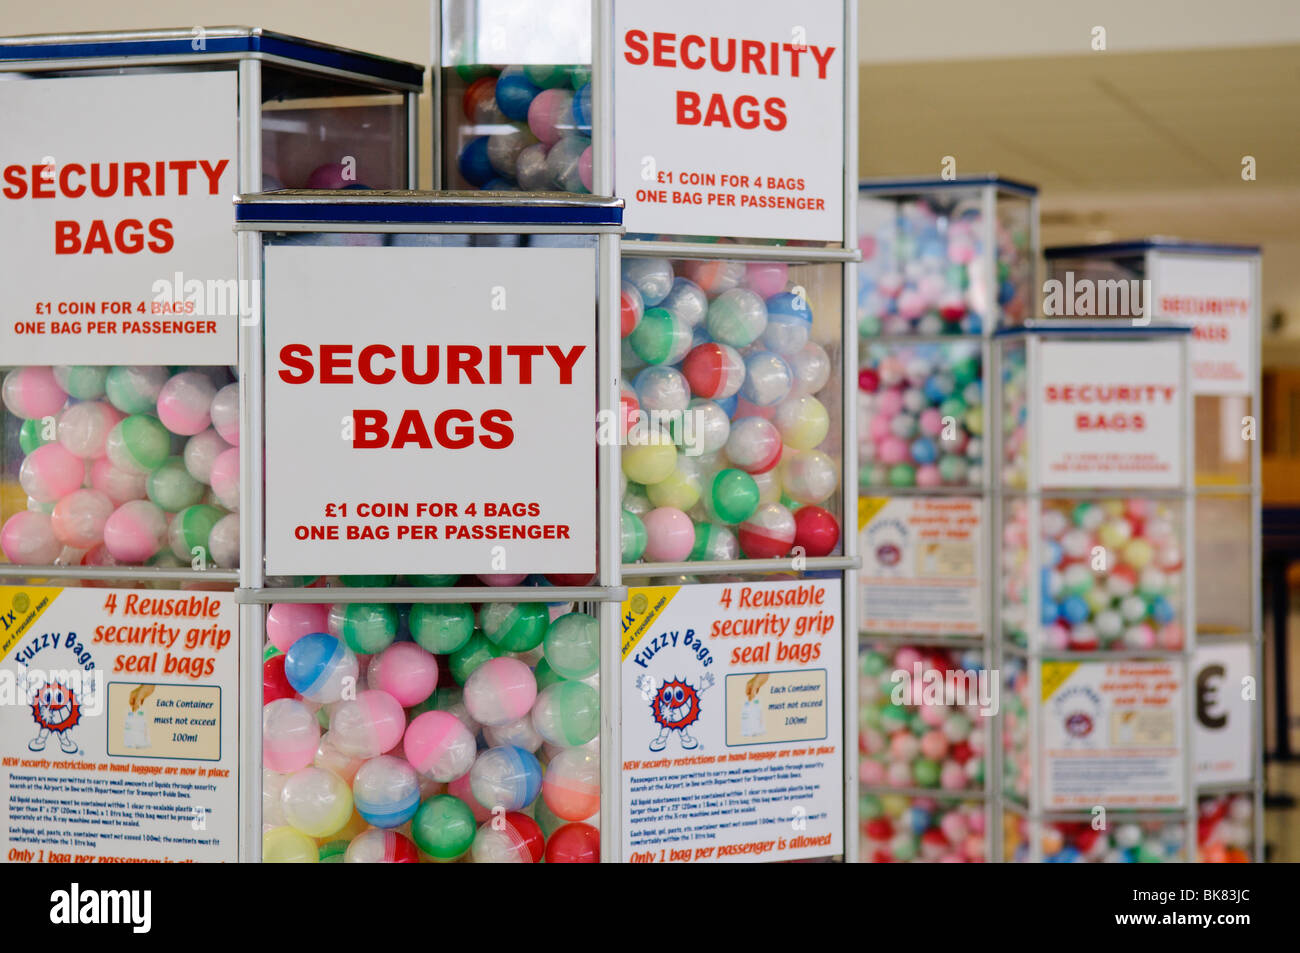 Vending machines dispensing security bags for liquids at an airport Stock Photo